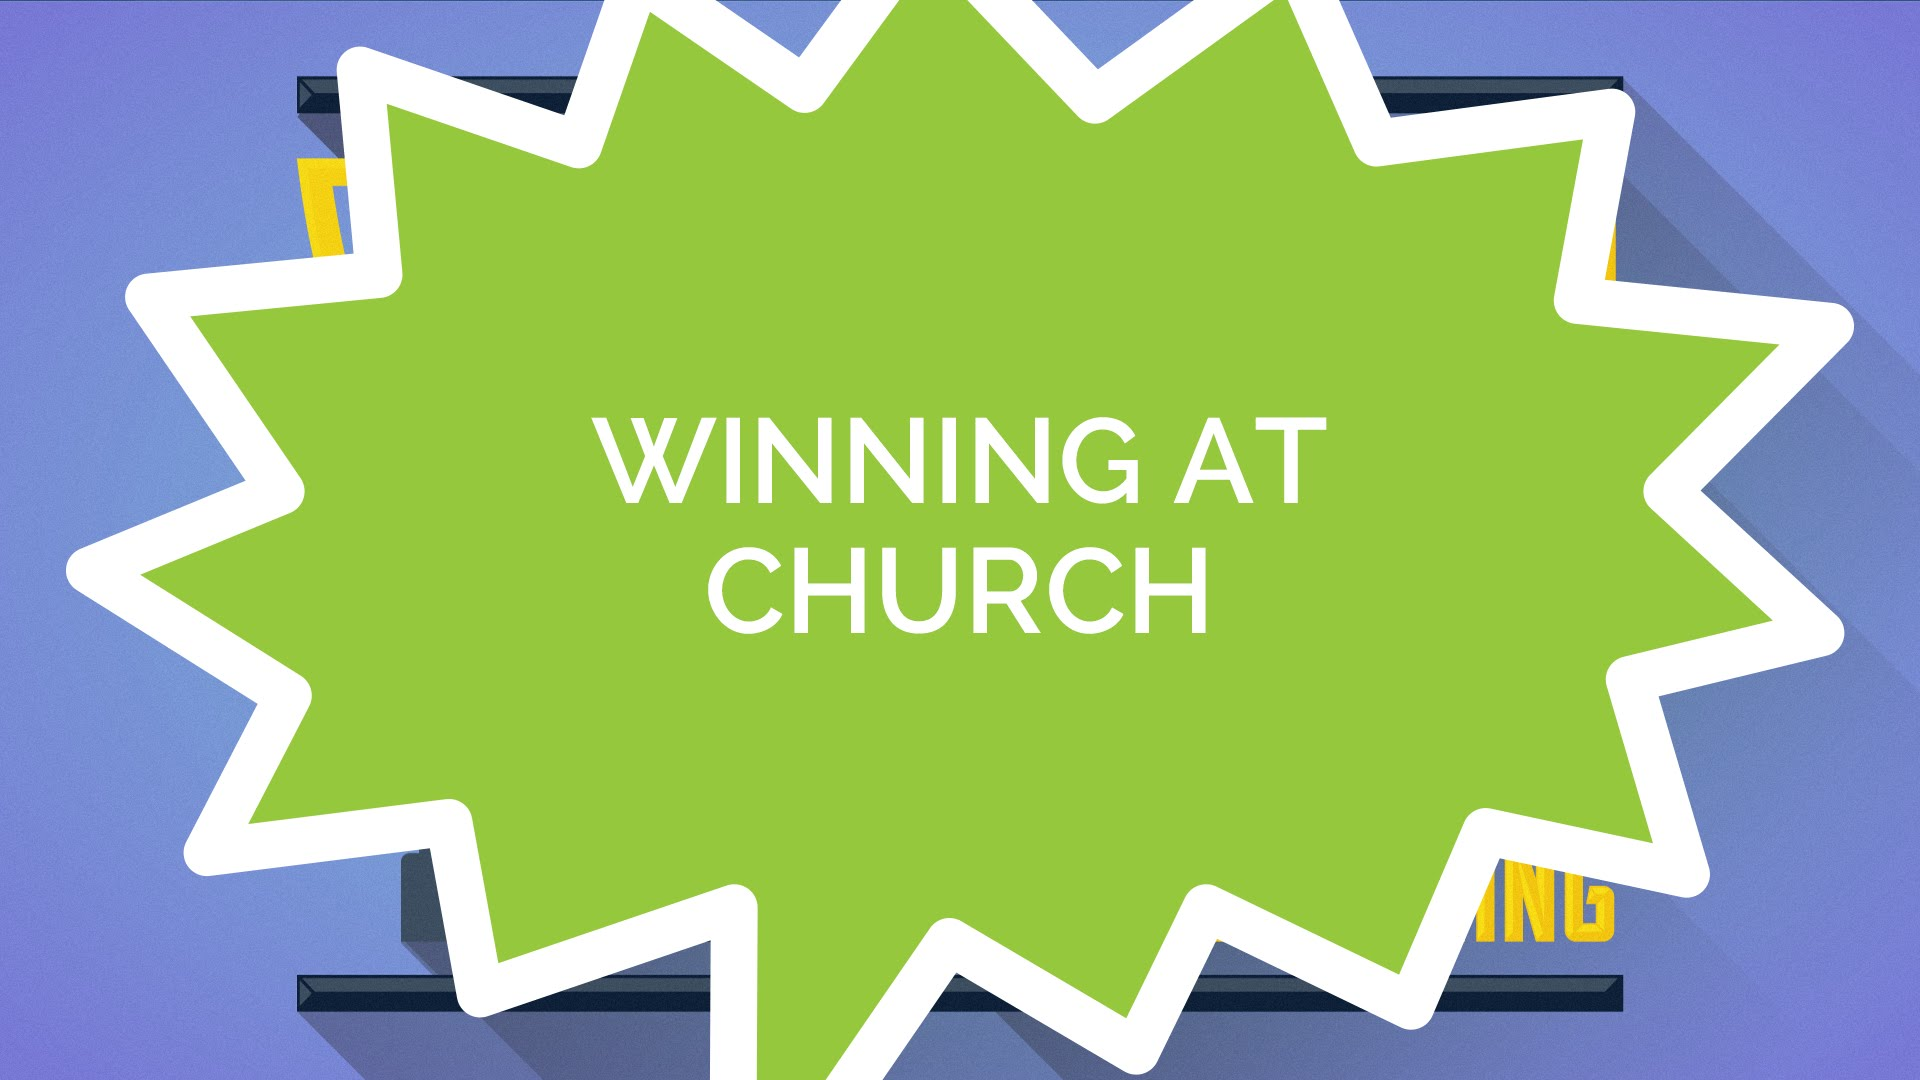 Winning at Church | How to Win at Everything #1 (Kids)